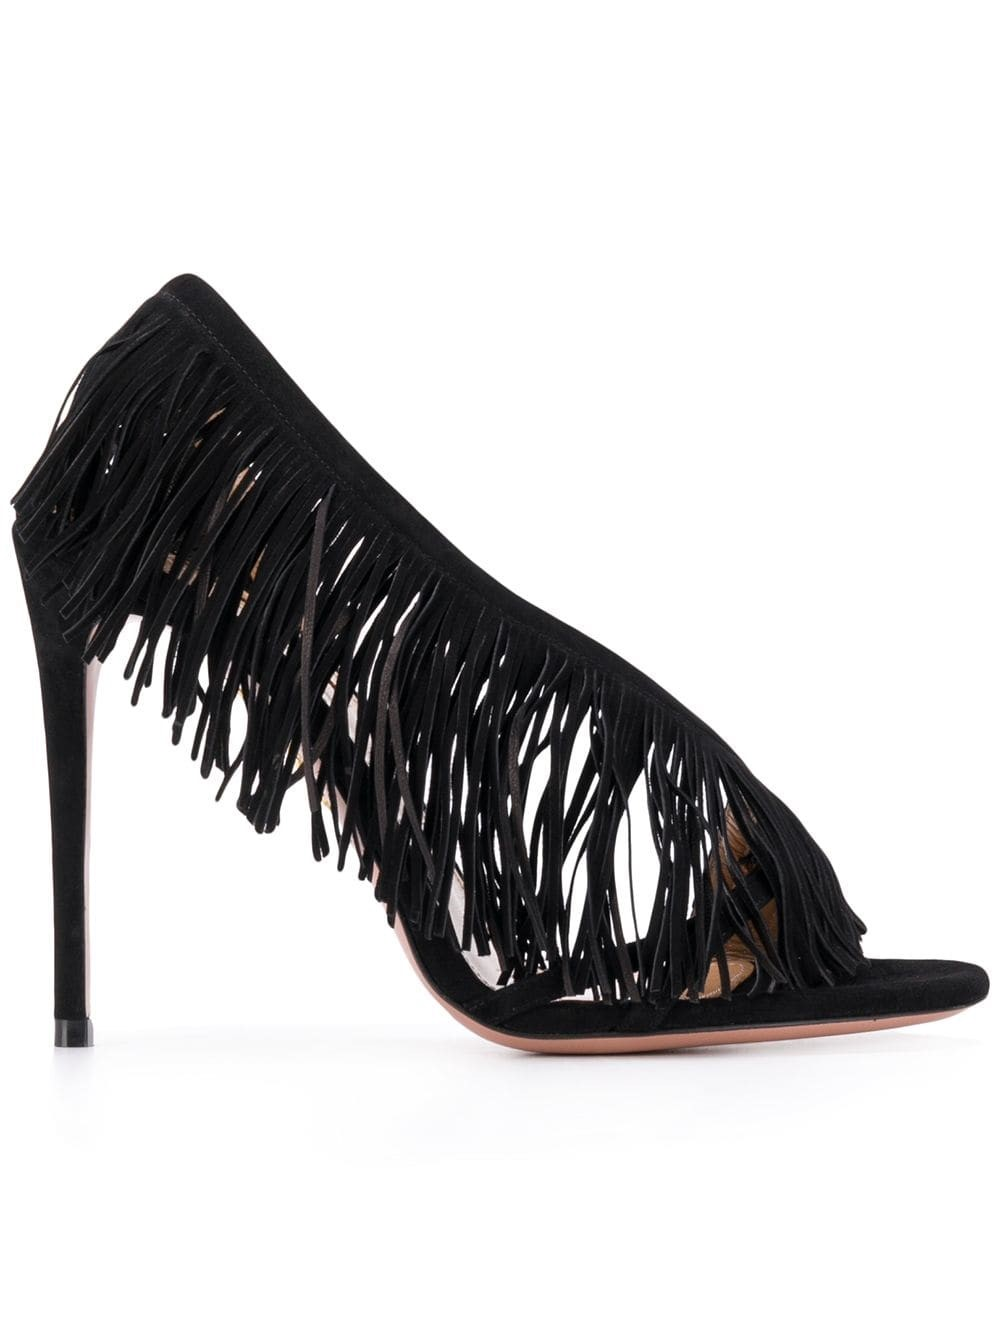 024f16a6764 aquazzura FRINGE SANDALS available on montiboutique.com - 27224